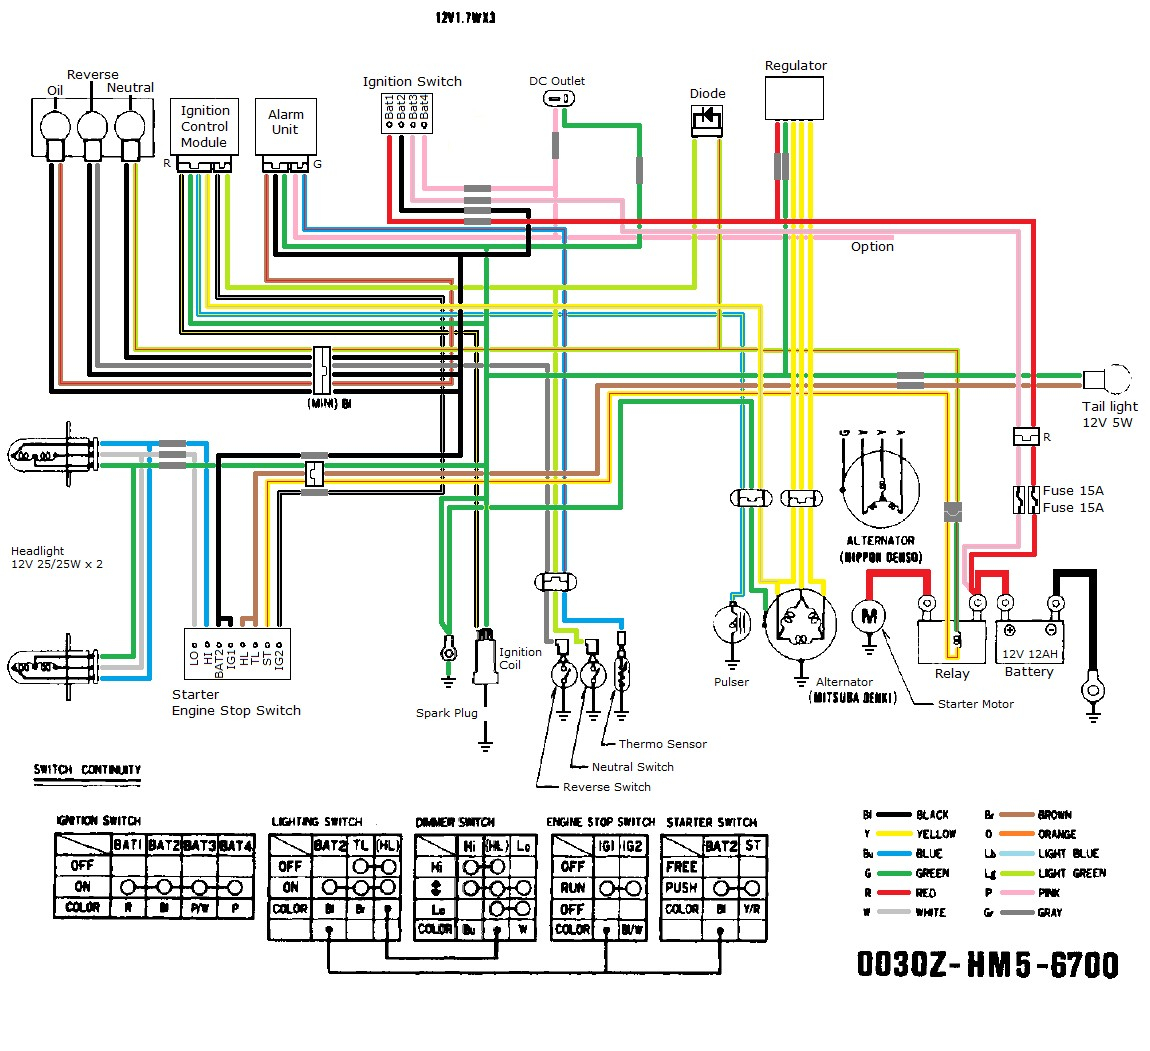 Diagram Tao Tao 110 Wiring Diagram Full Version Hd Quality Wiring Diagram Wiringshed Apposrl It